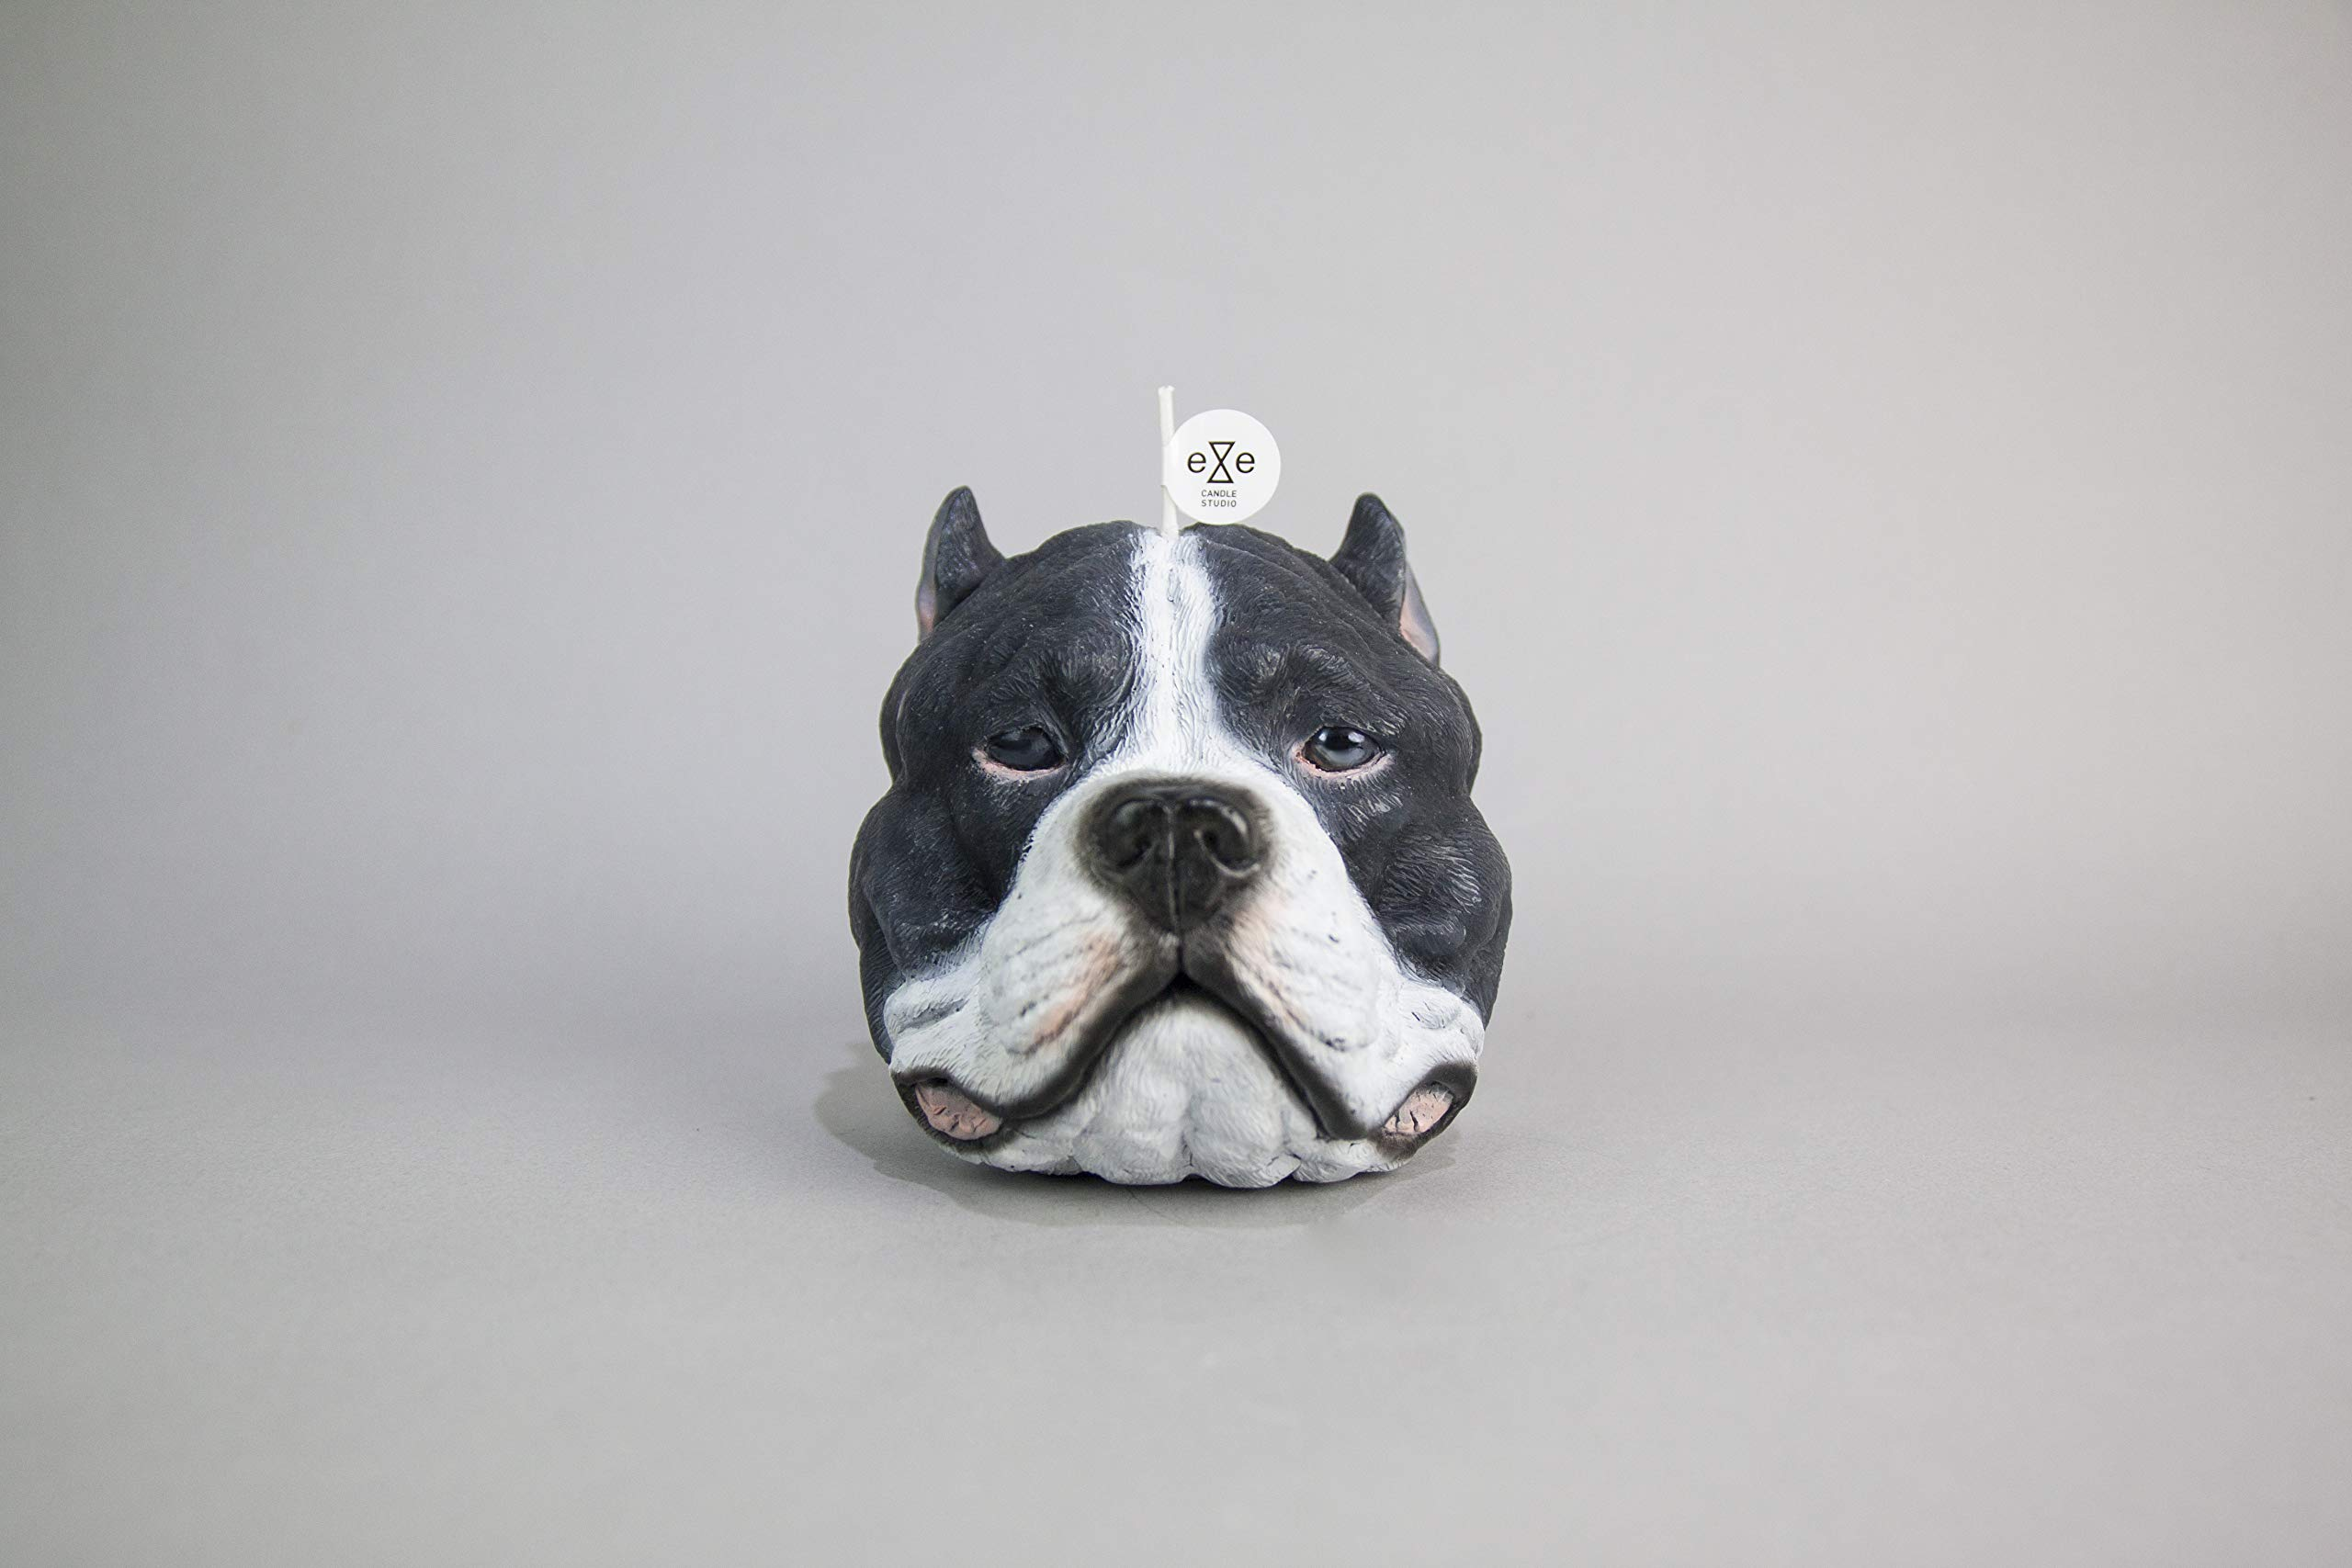 Taste Taiwan Design Staffordshire Bull Terrier (Pit Bull) Candle - Gray and White